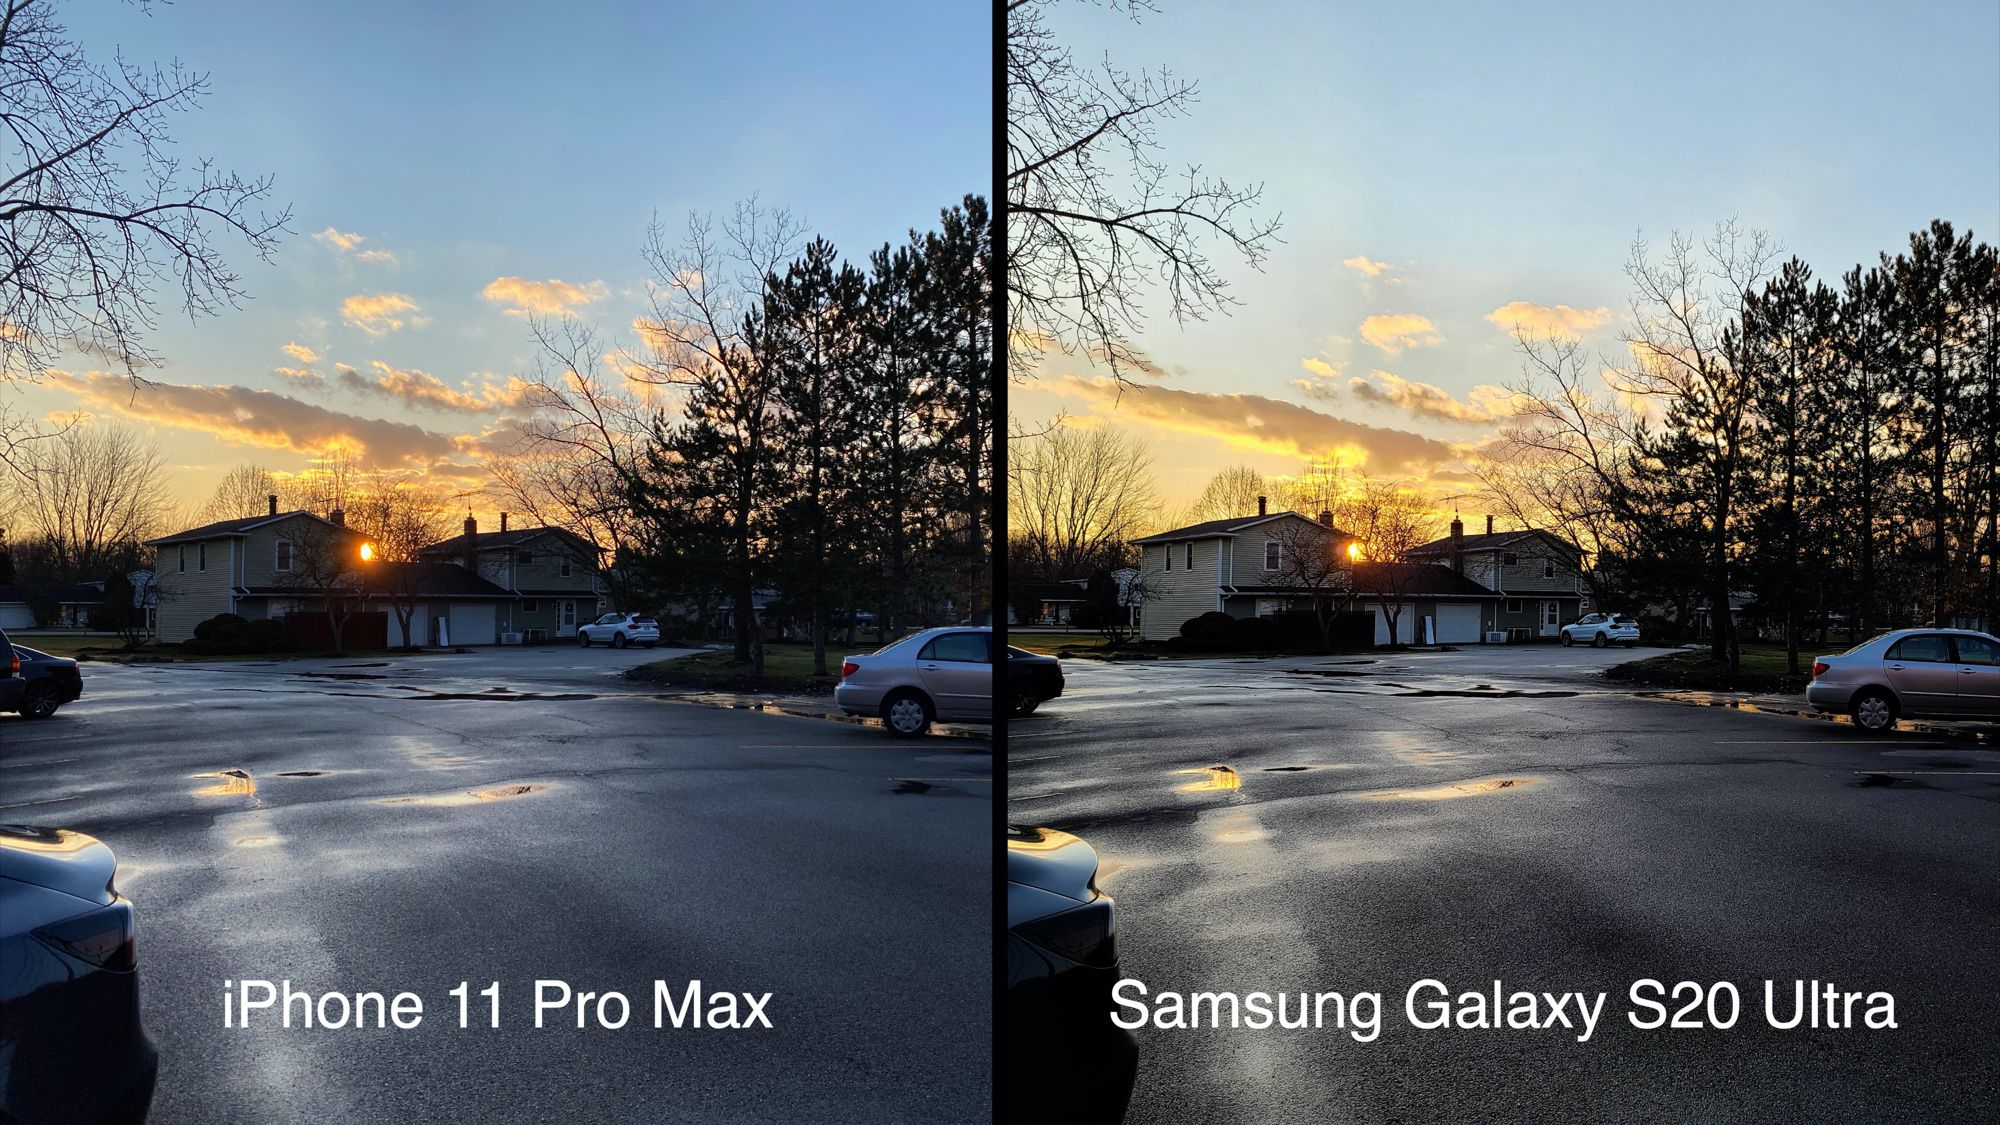 Camera Comparison Iphone 11 Pro Max Vs Samsung Galaxy S20 Ultra Macrumors